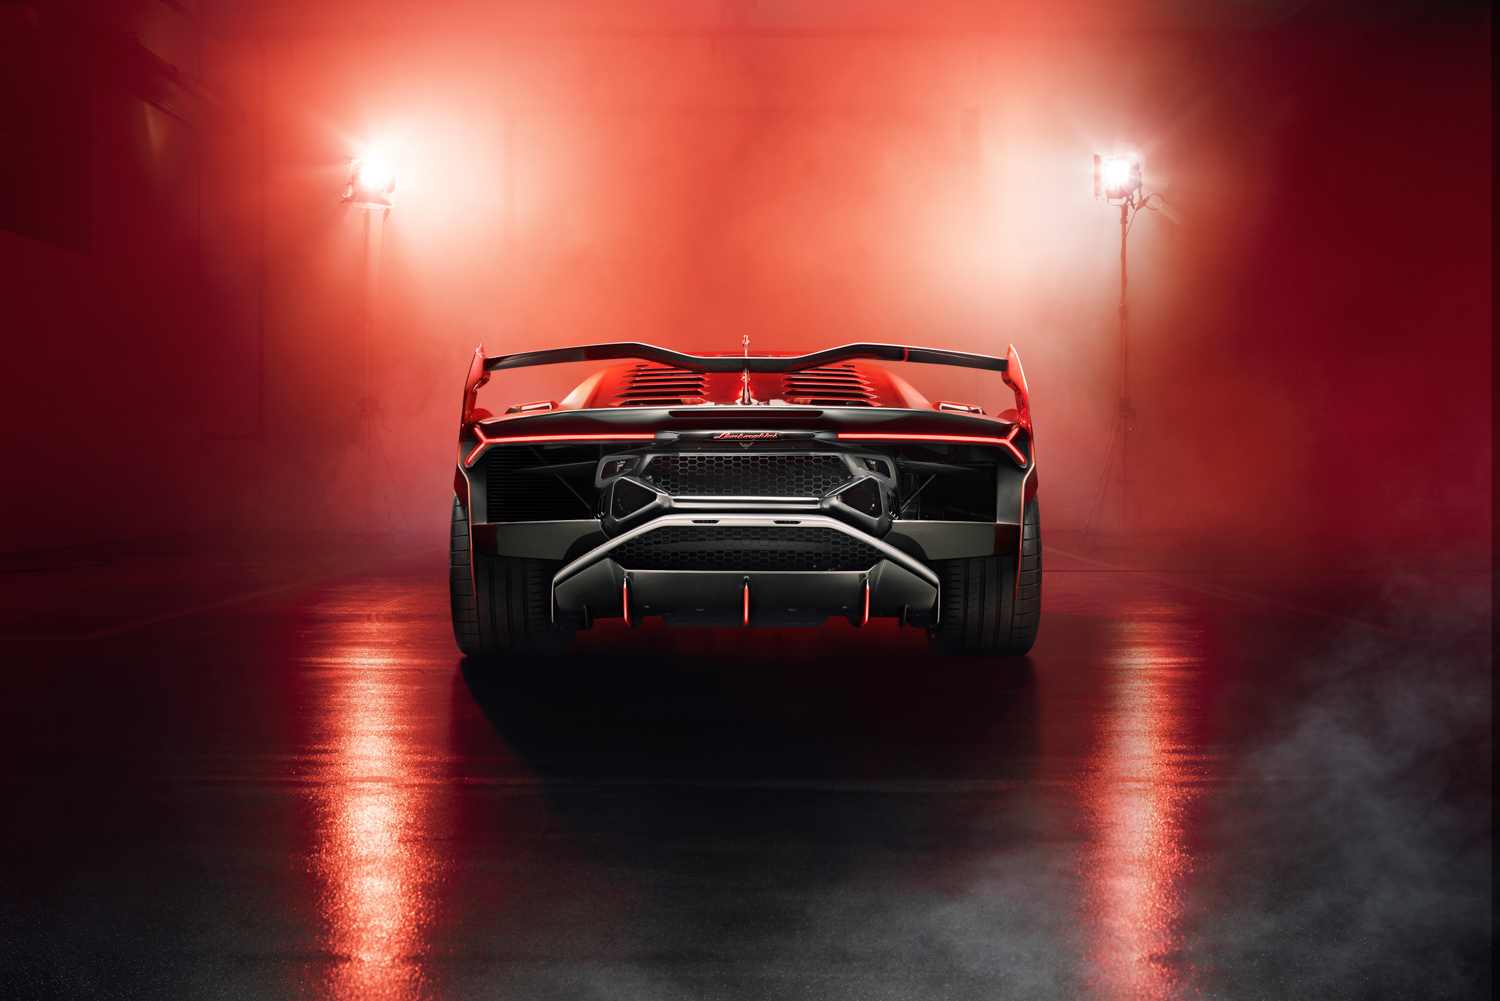 Lamborghini SC18 lights rear